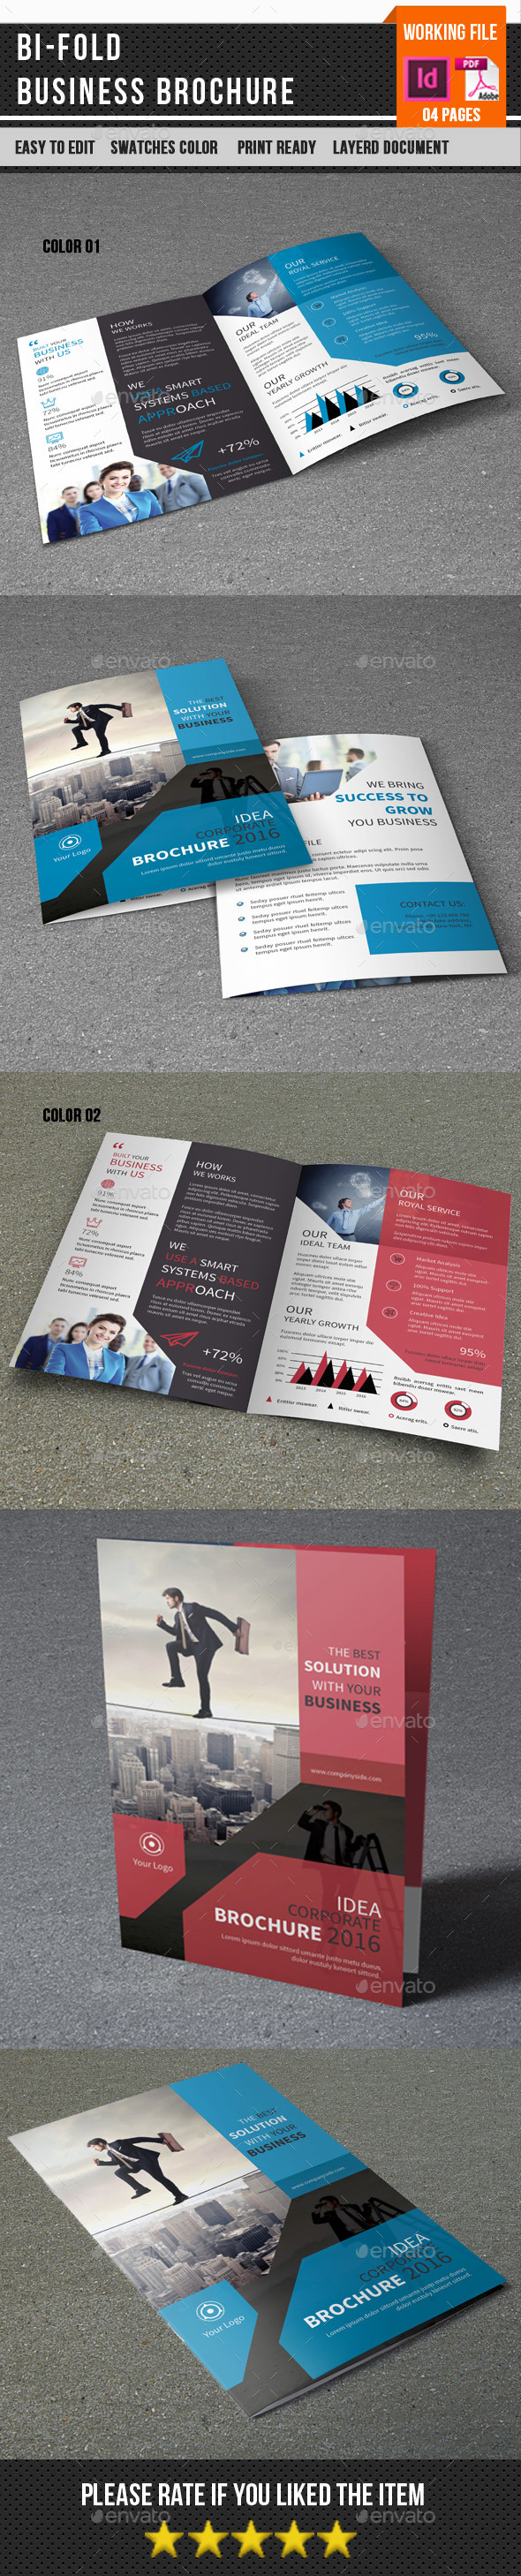 Corporate Bifold Brochure-V377 - Corporate Brochures